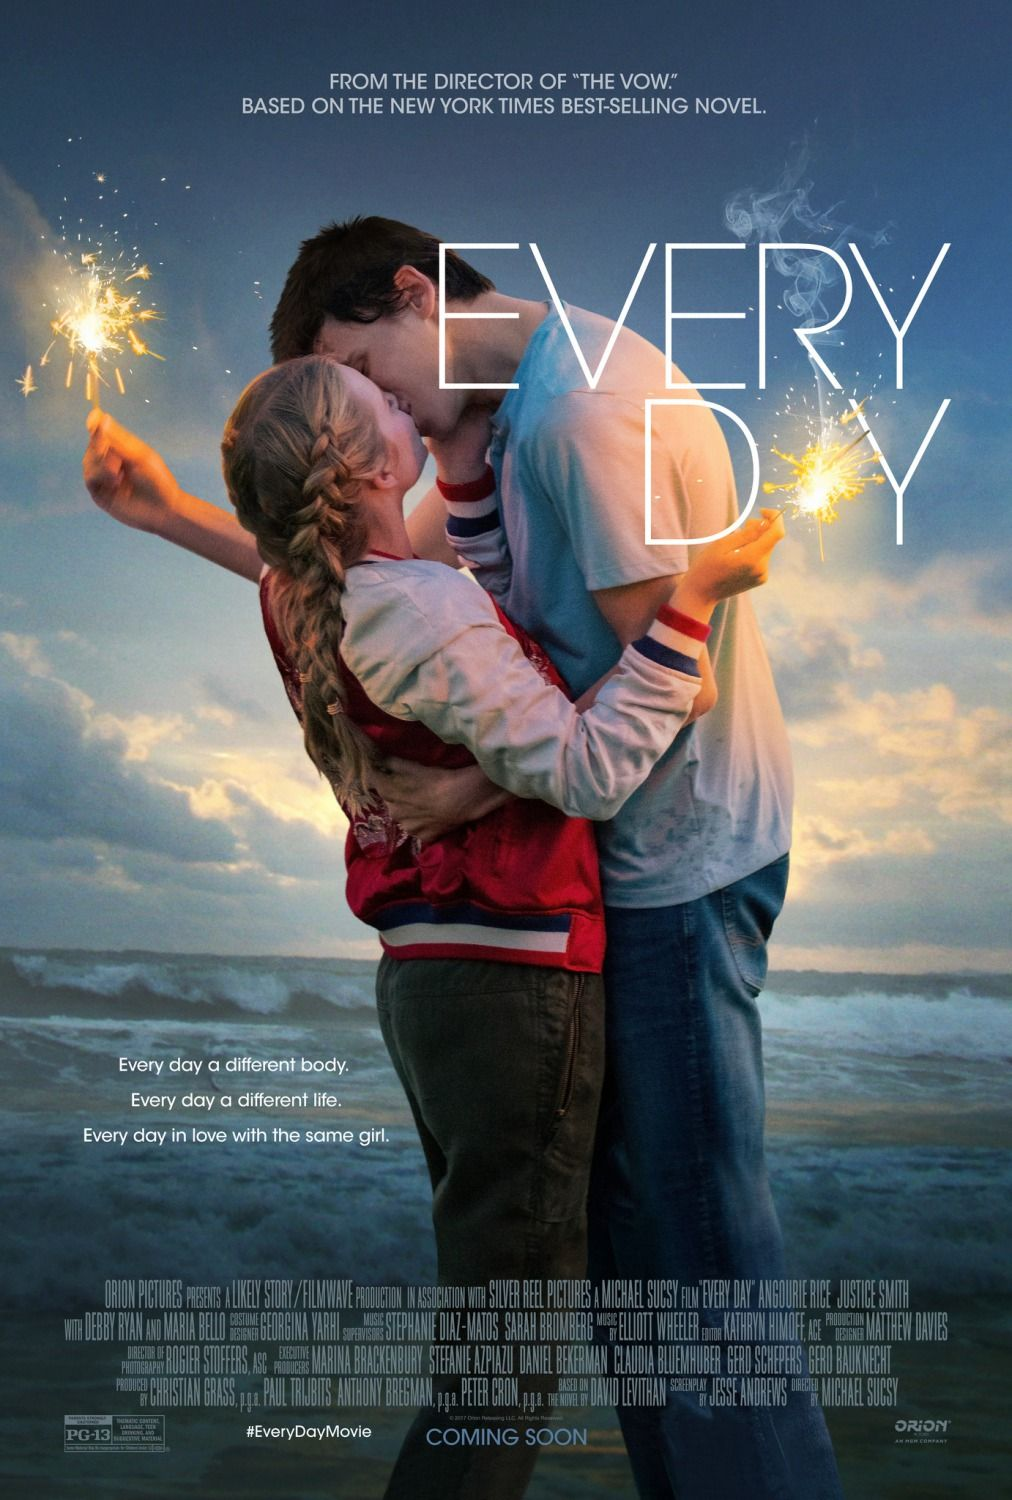 Every Day New Movie Poster Https Teaser Trailer Com Movie Every Day Everyday Everydaymovie Ang Streaming Movies Online Free Movies Online Full Movies